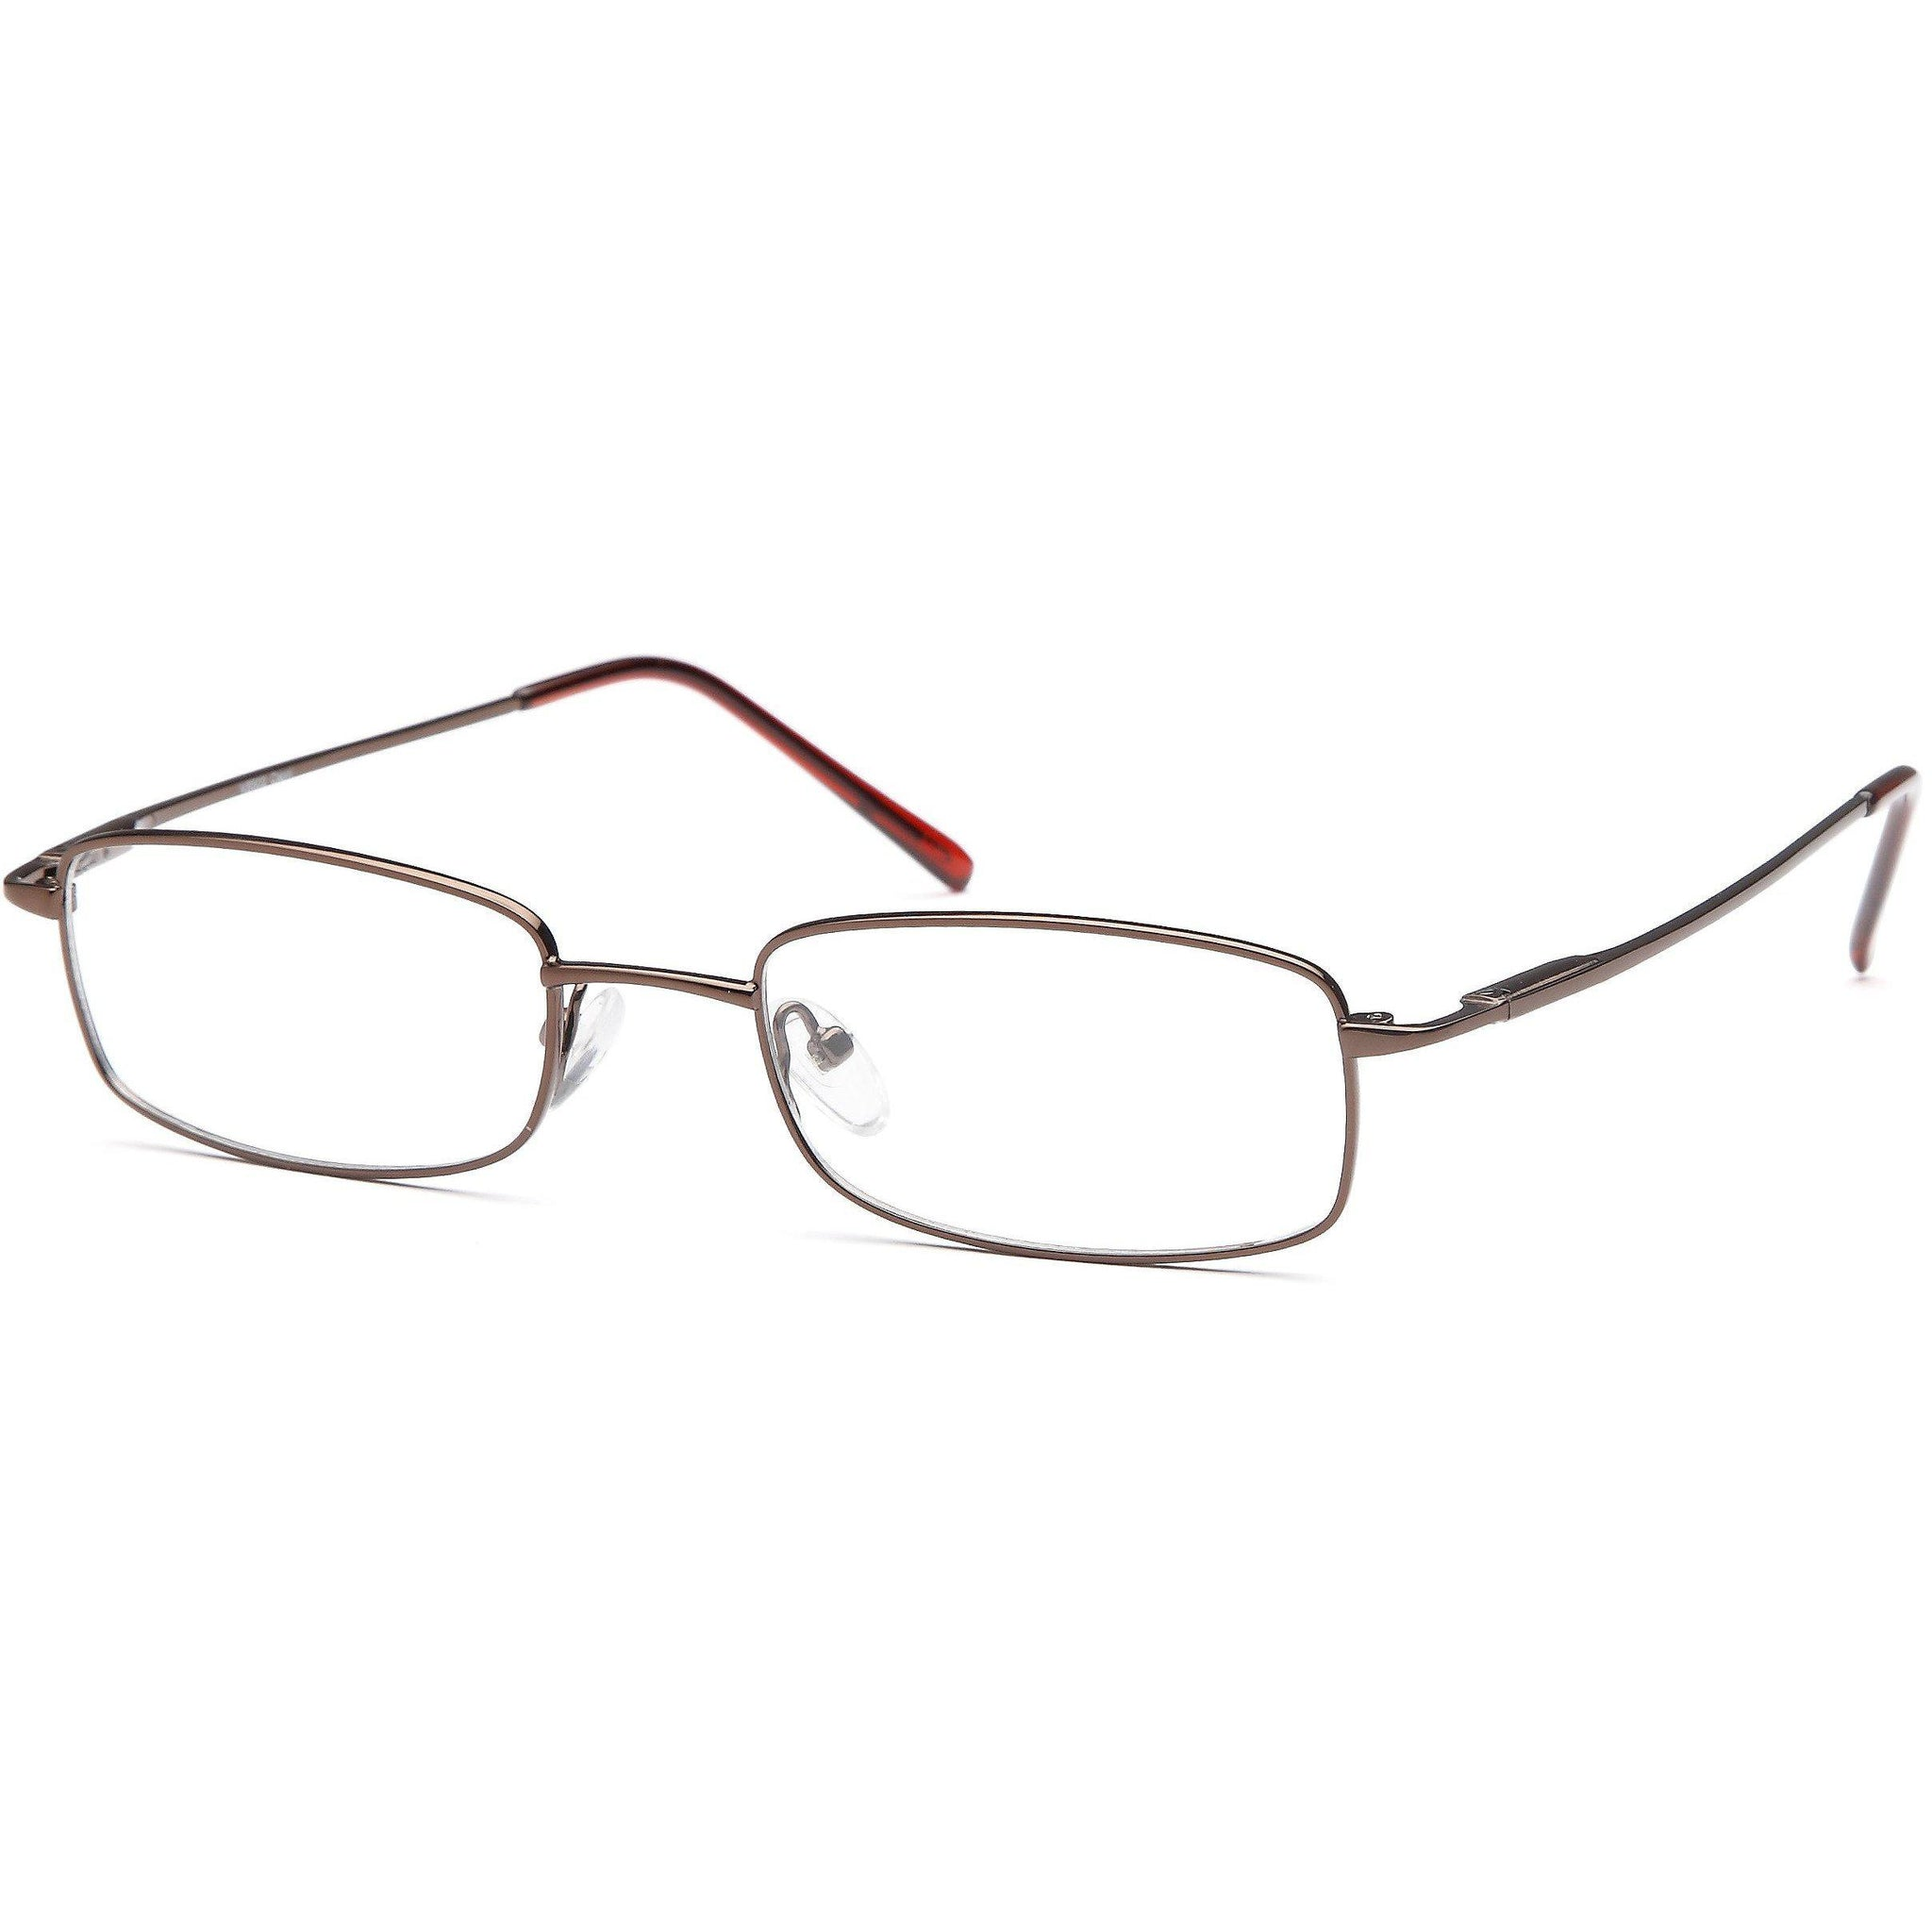 Classics Prescription Glasses VS 502 Frames